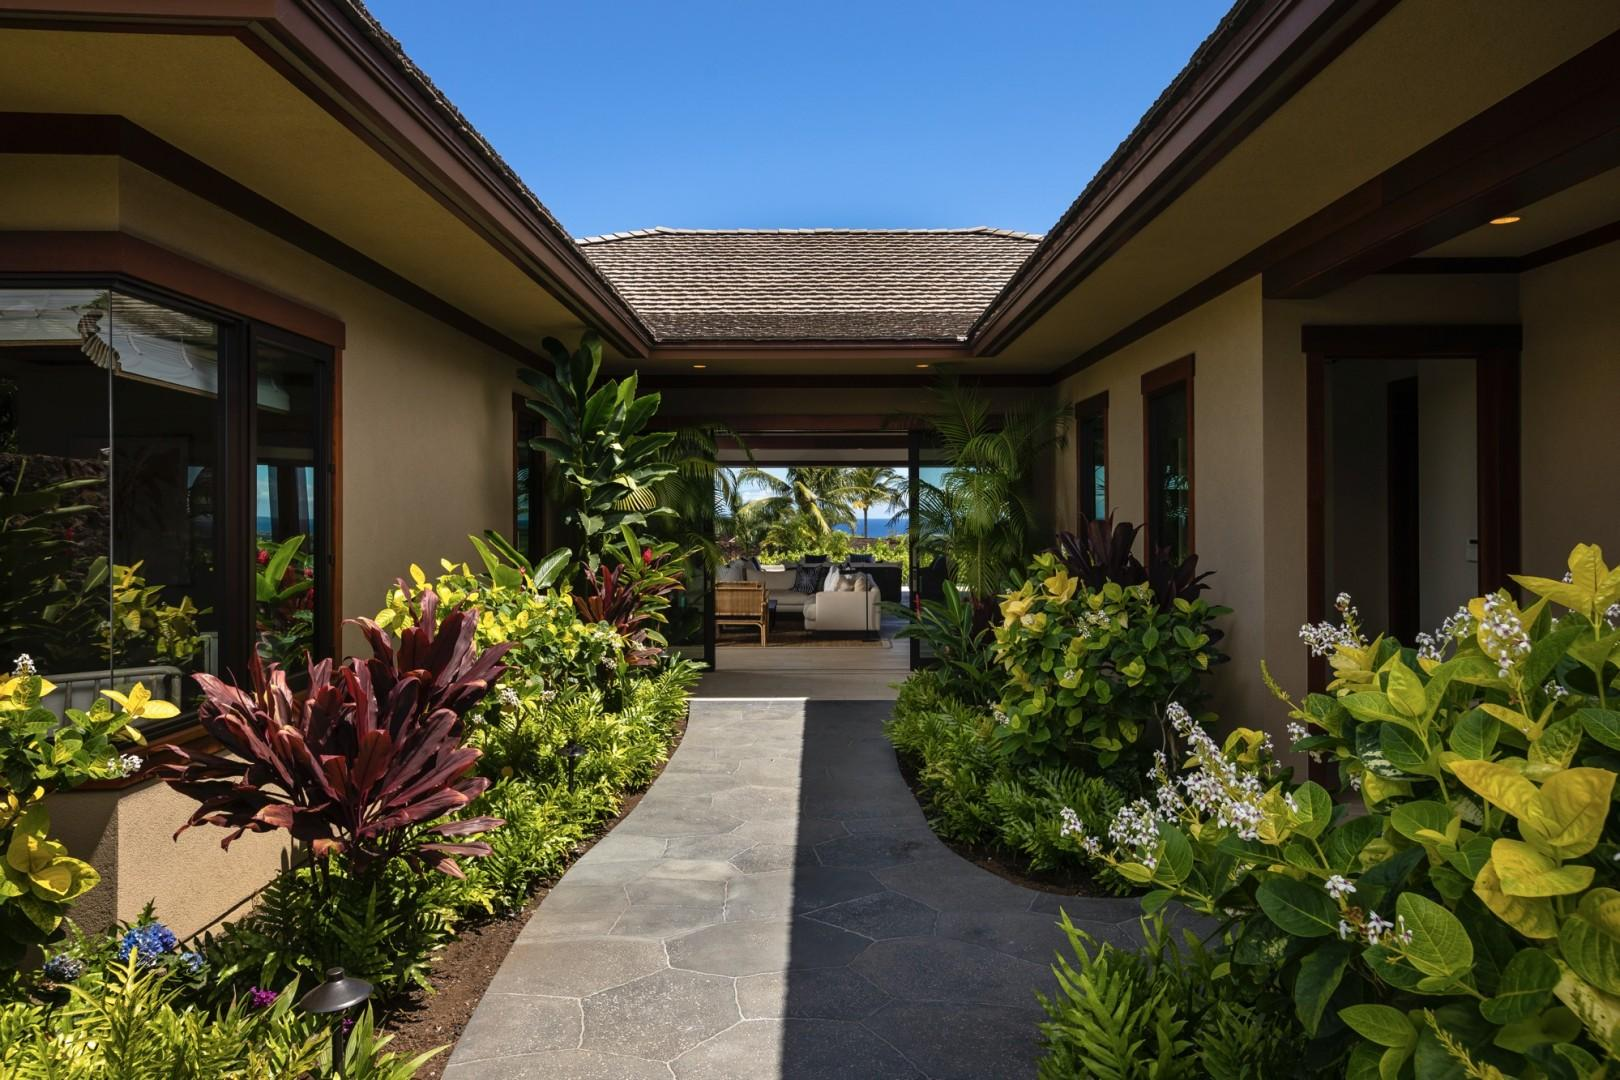 Sublime landscaping and serene water features welcome you to your private oasis in paradise.